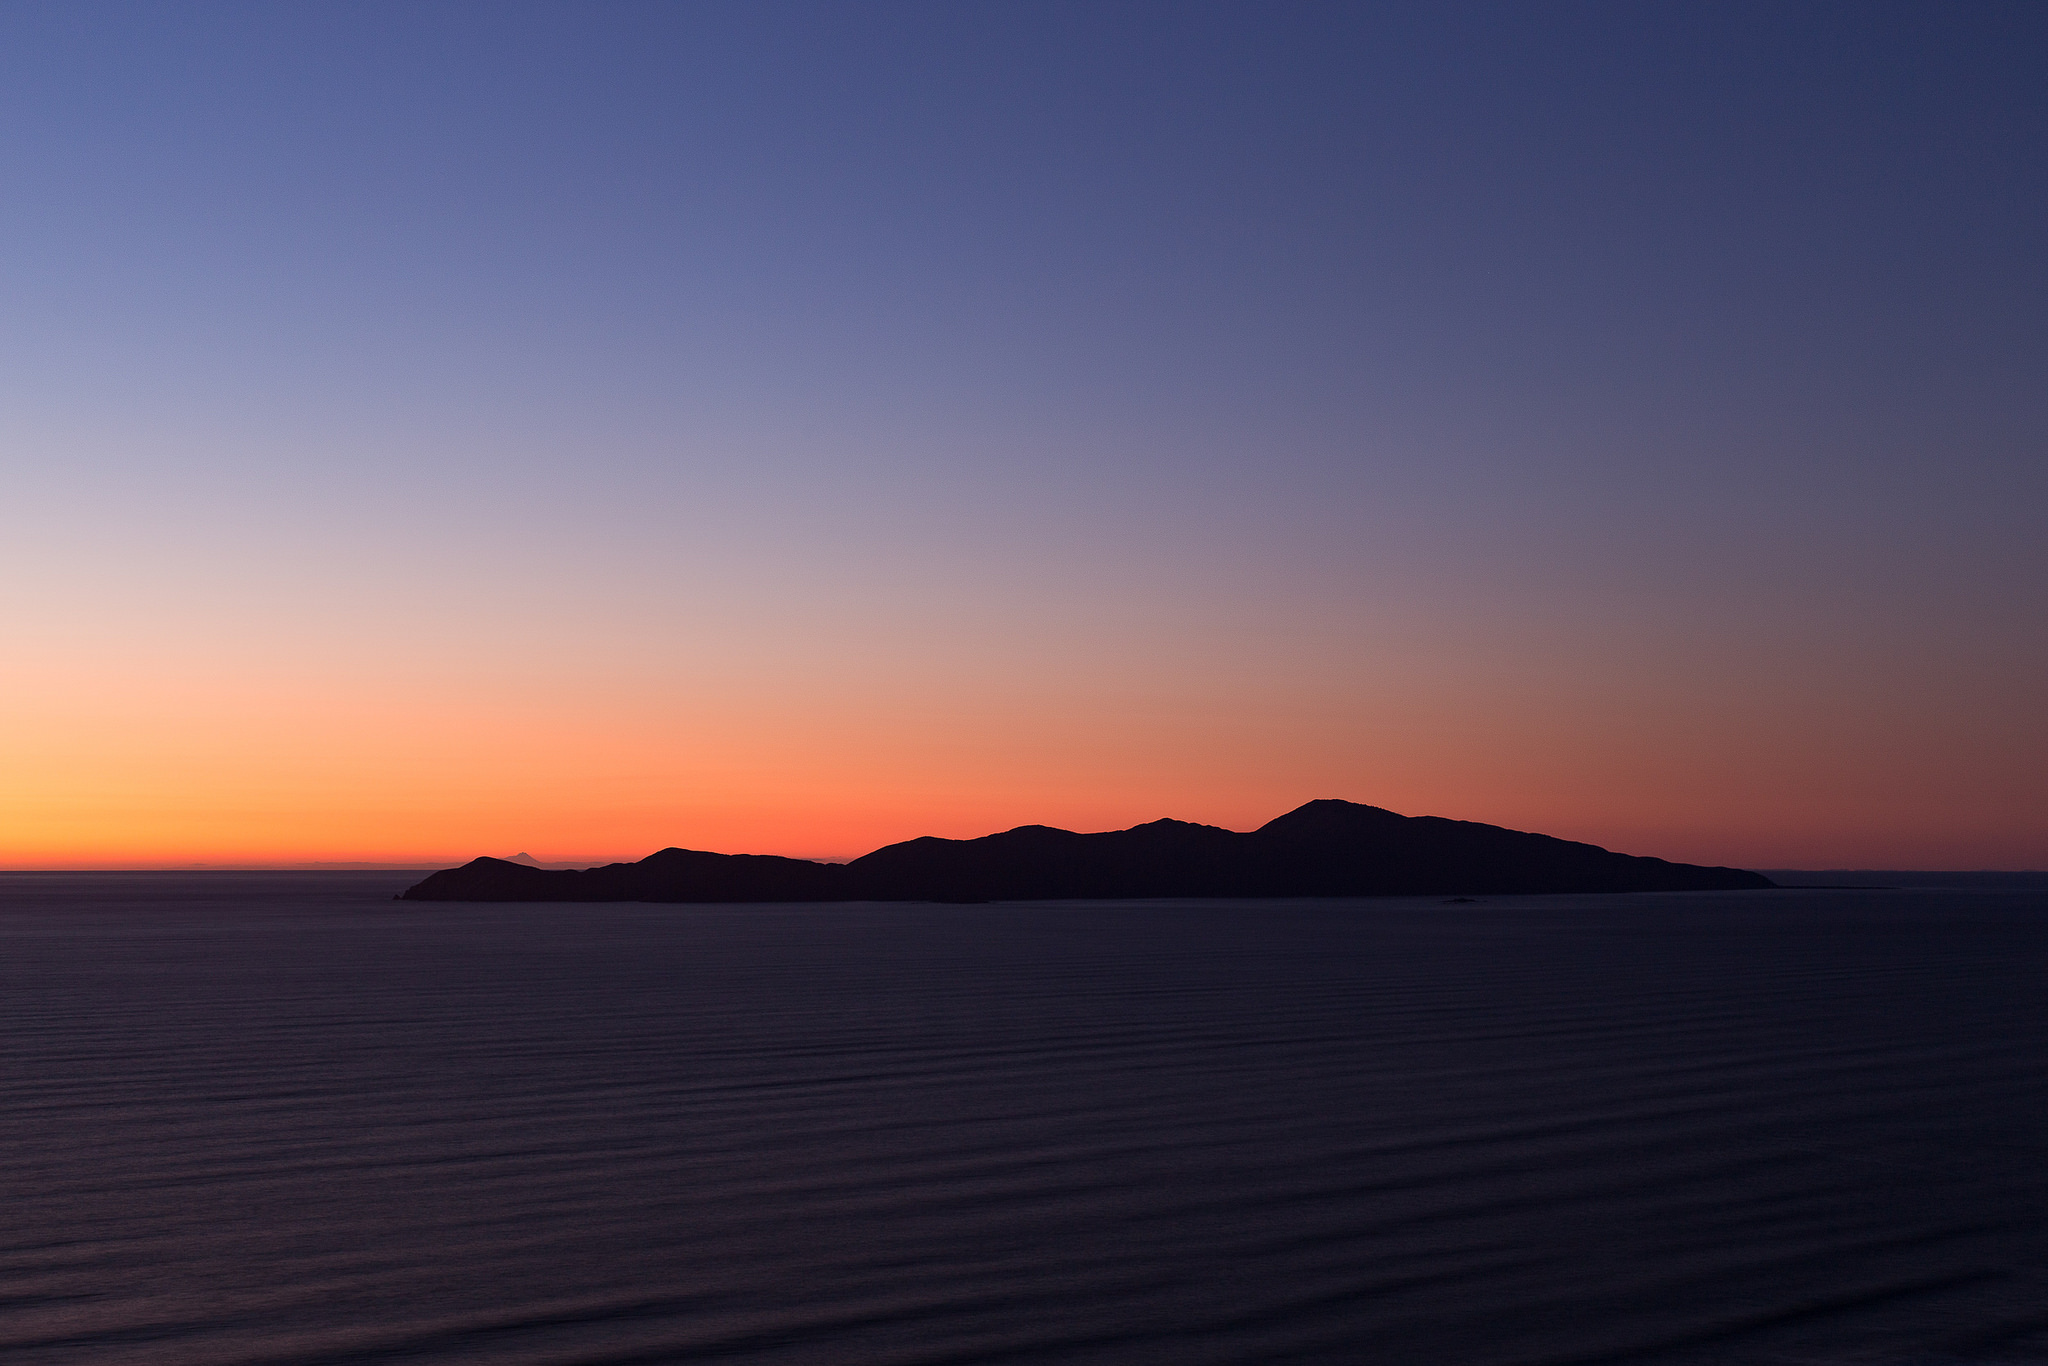 Kapiti Island silhouette with Mount Taranaki peeking over the southern end (left hand side)